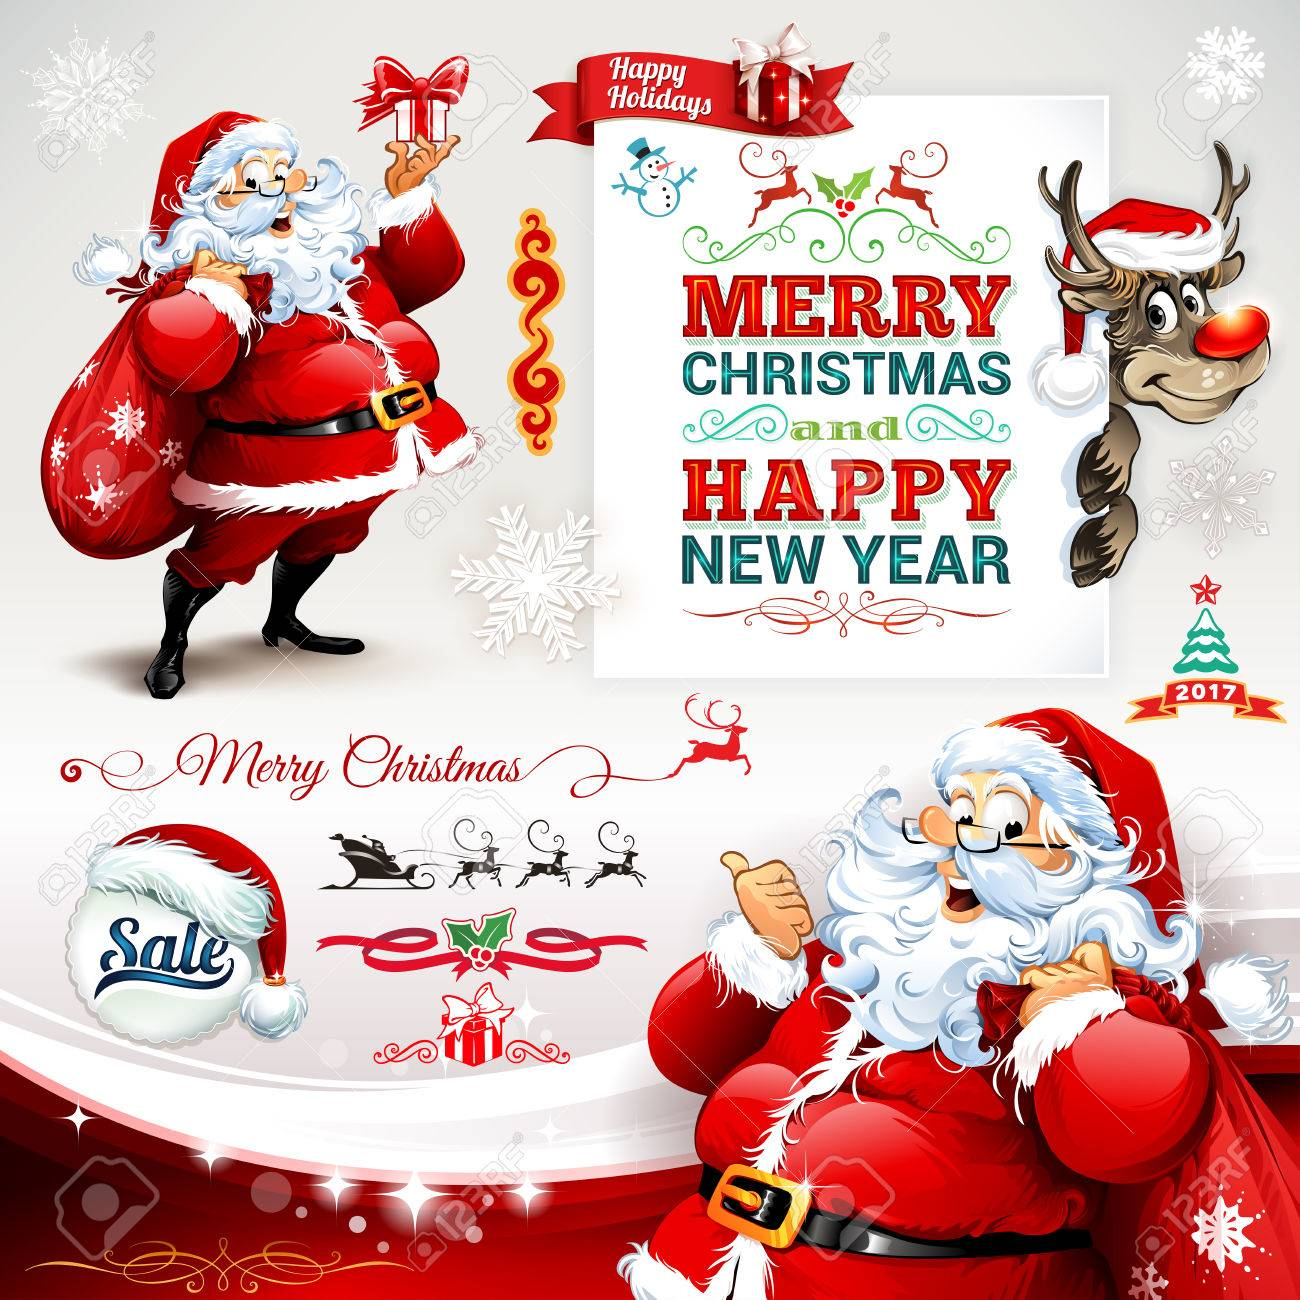 Vector set of vintage Christmas labels, badges and banners with cartoon Santa Claus character, present, tree, hat, sleigh, snowman and reindeer retro illustrations. Calligraphic and typographic design elements. - 63010783